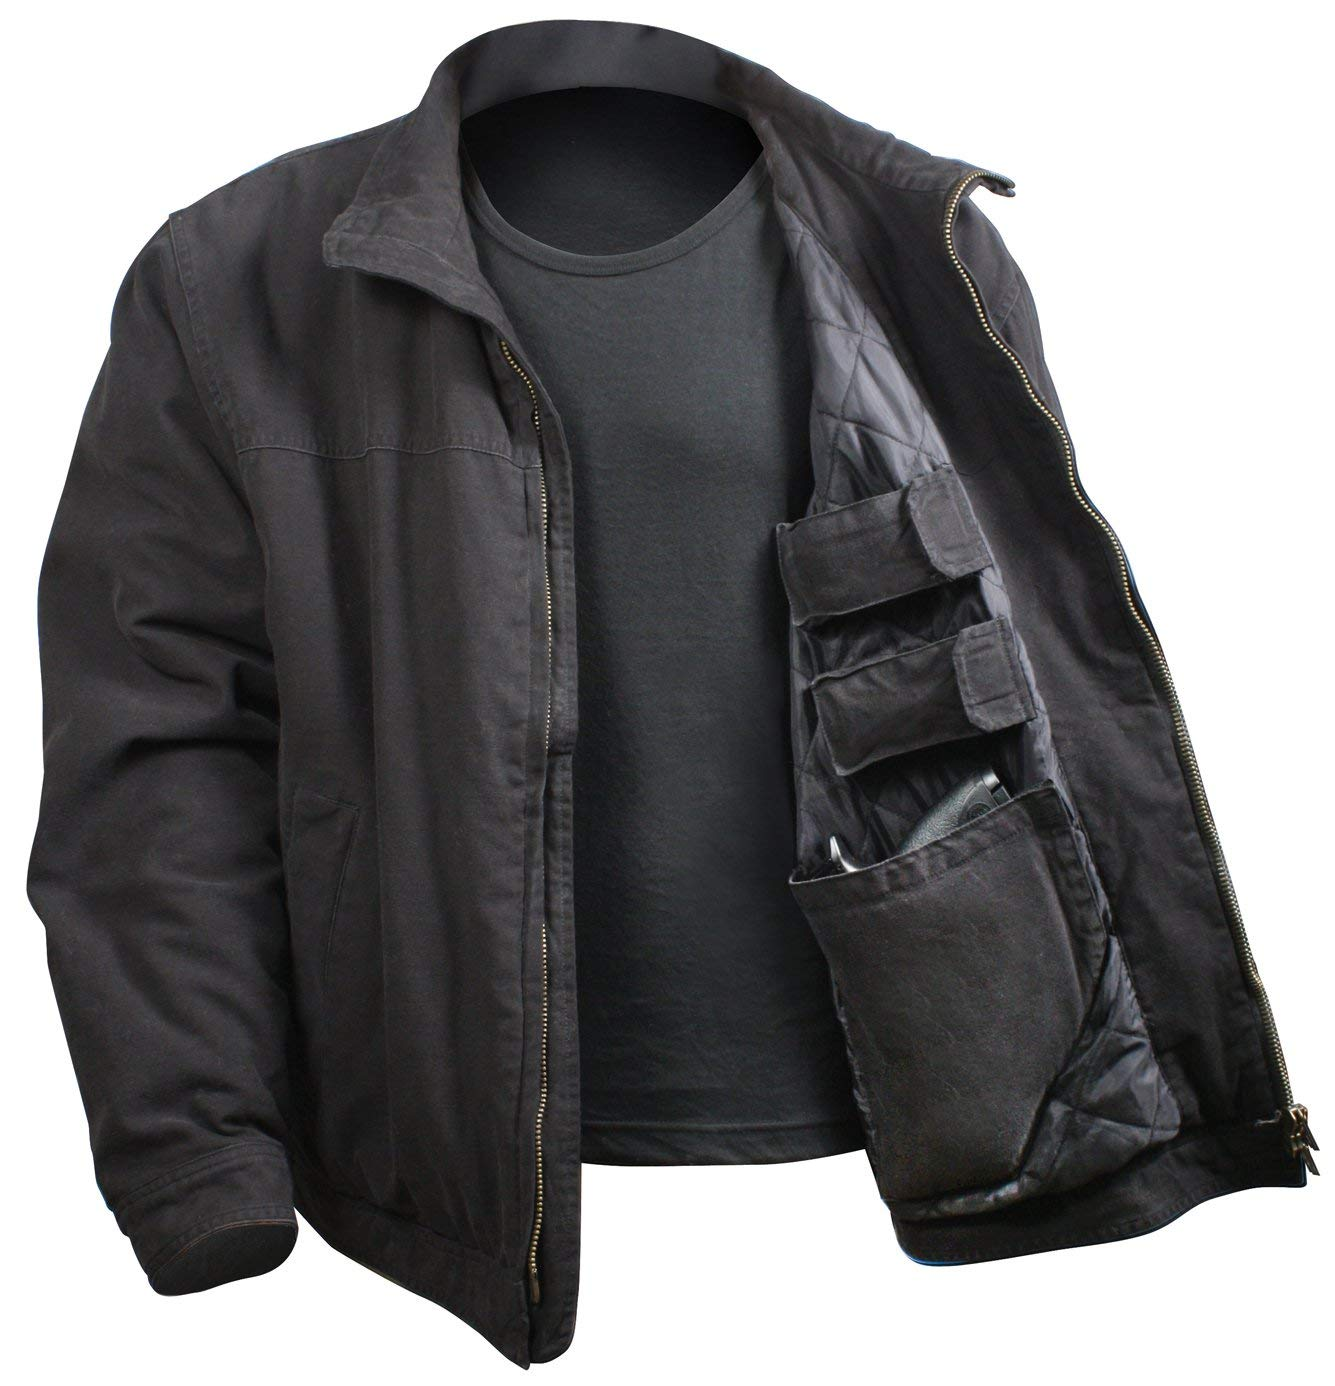 Rothco 3 Season Concealed Carry Jacket - Black - Medium - 5385-BLACK-M